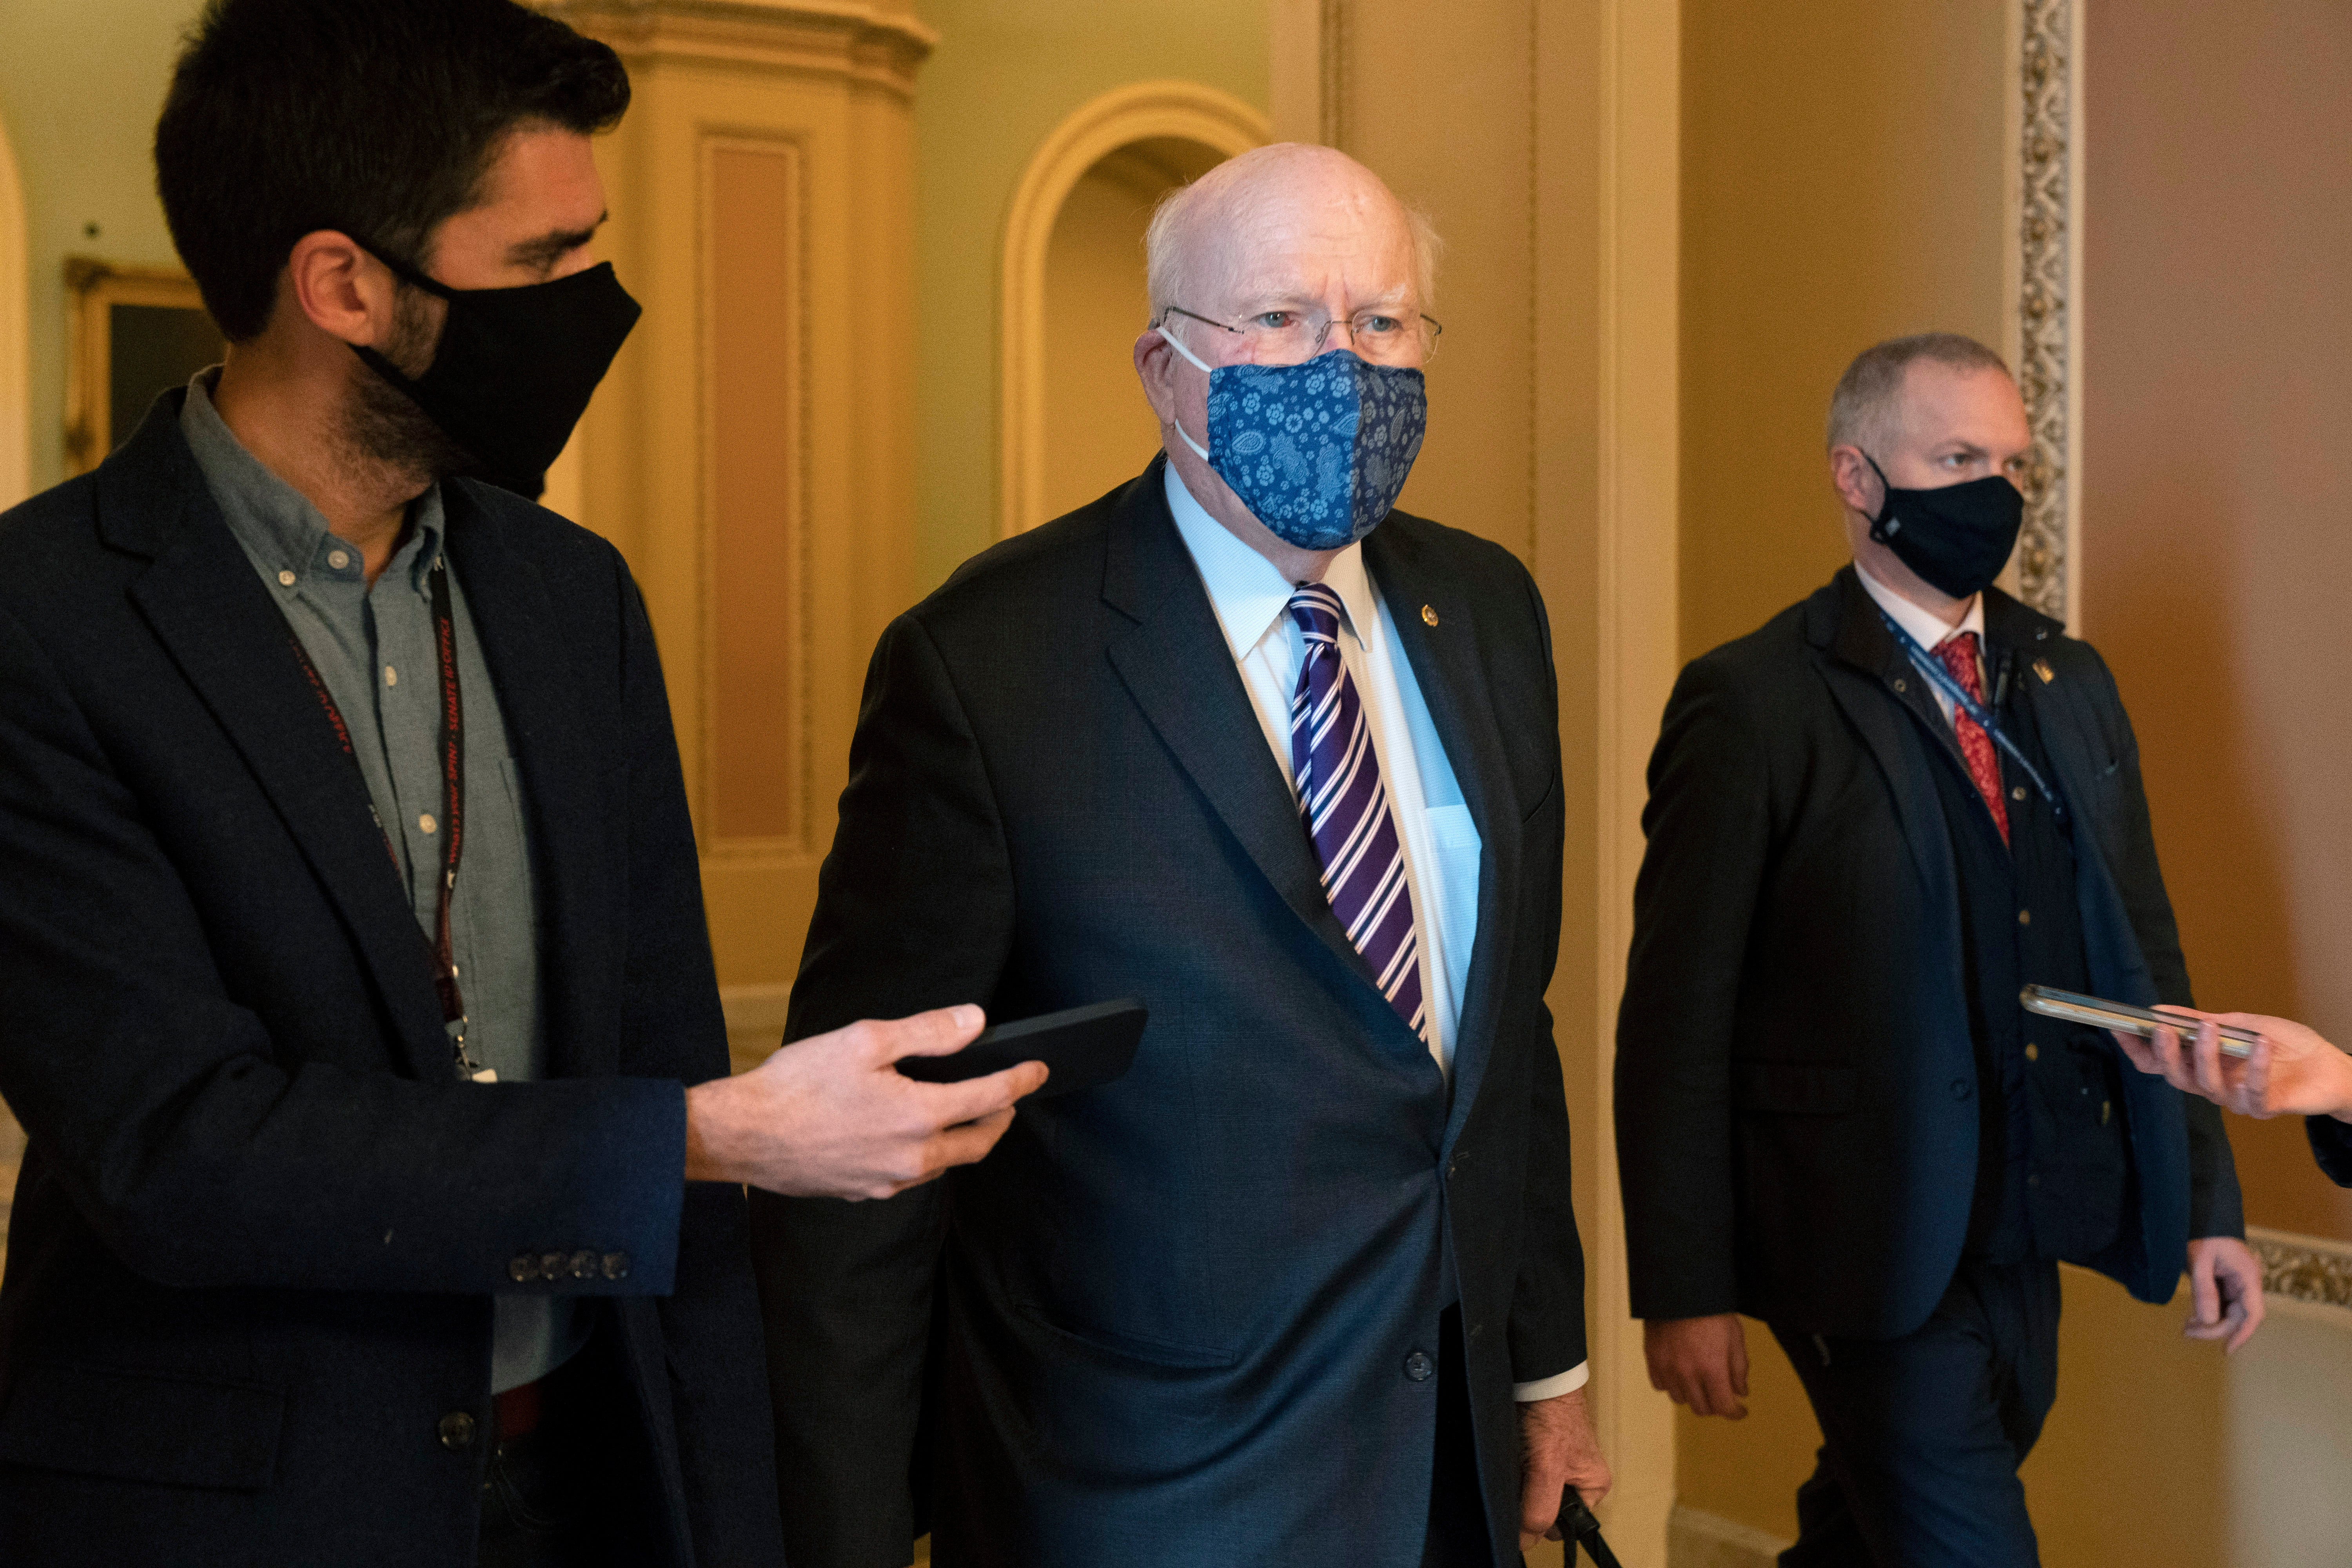 Vermont Sen. Leahy taken to hospital for observation - independent